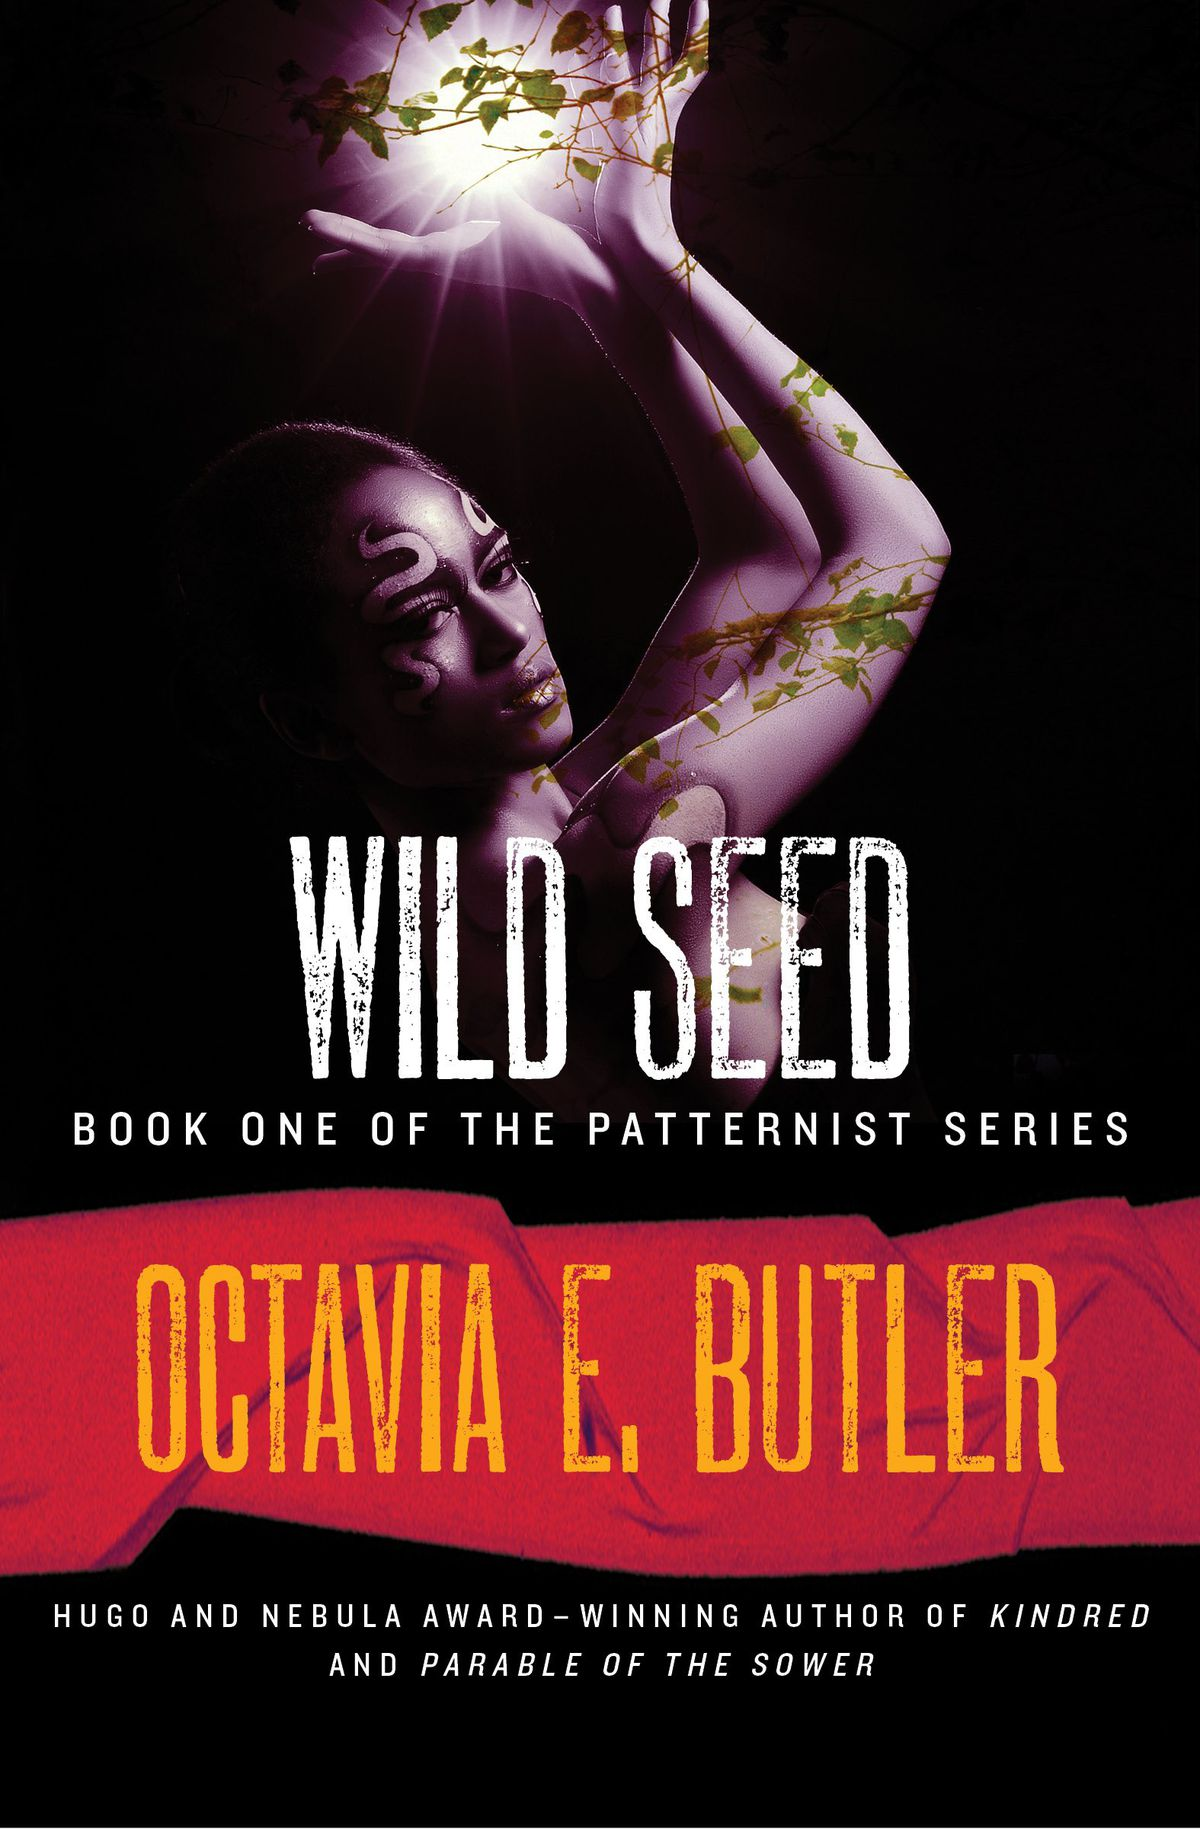 The cover of Octavia Butler's Wild Seed, with a Black woman with snakes tattooed on her face holding up her hands and cupping vines